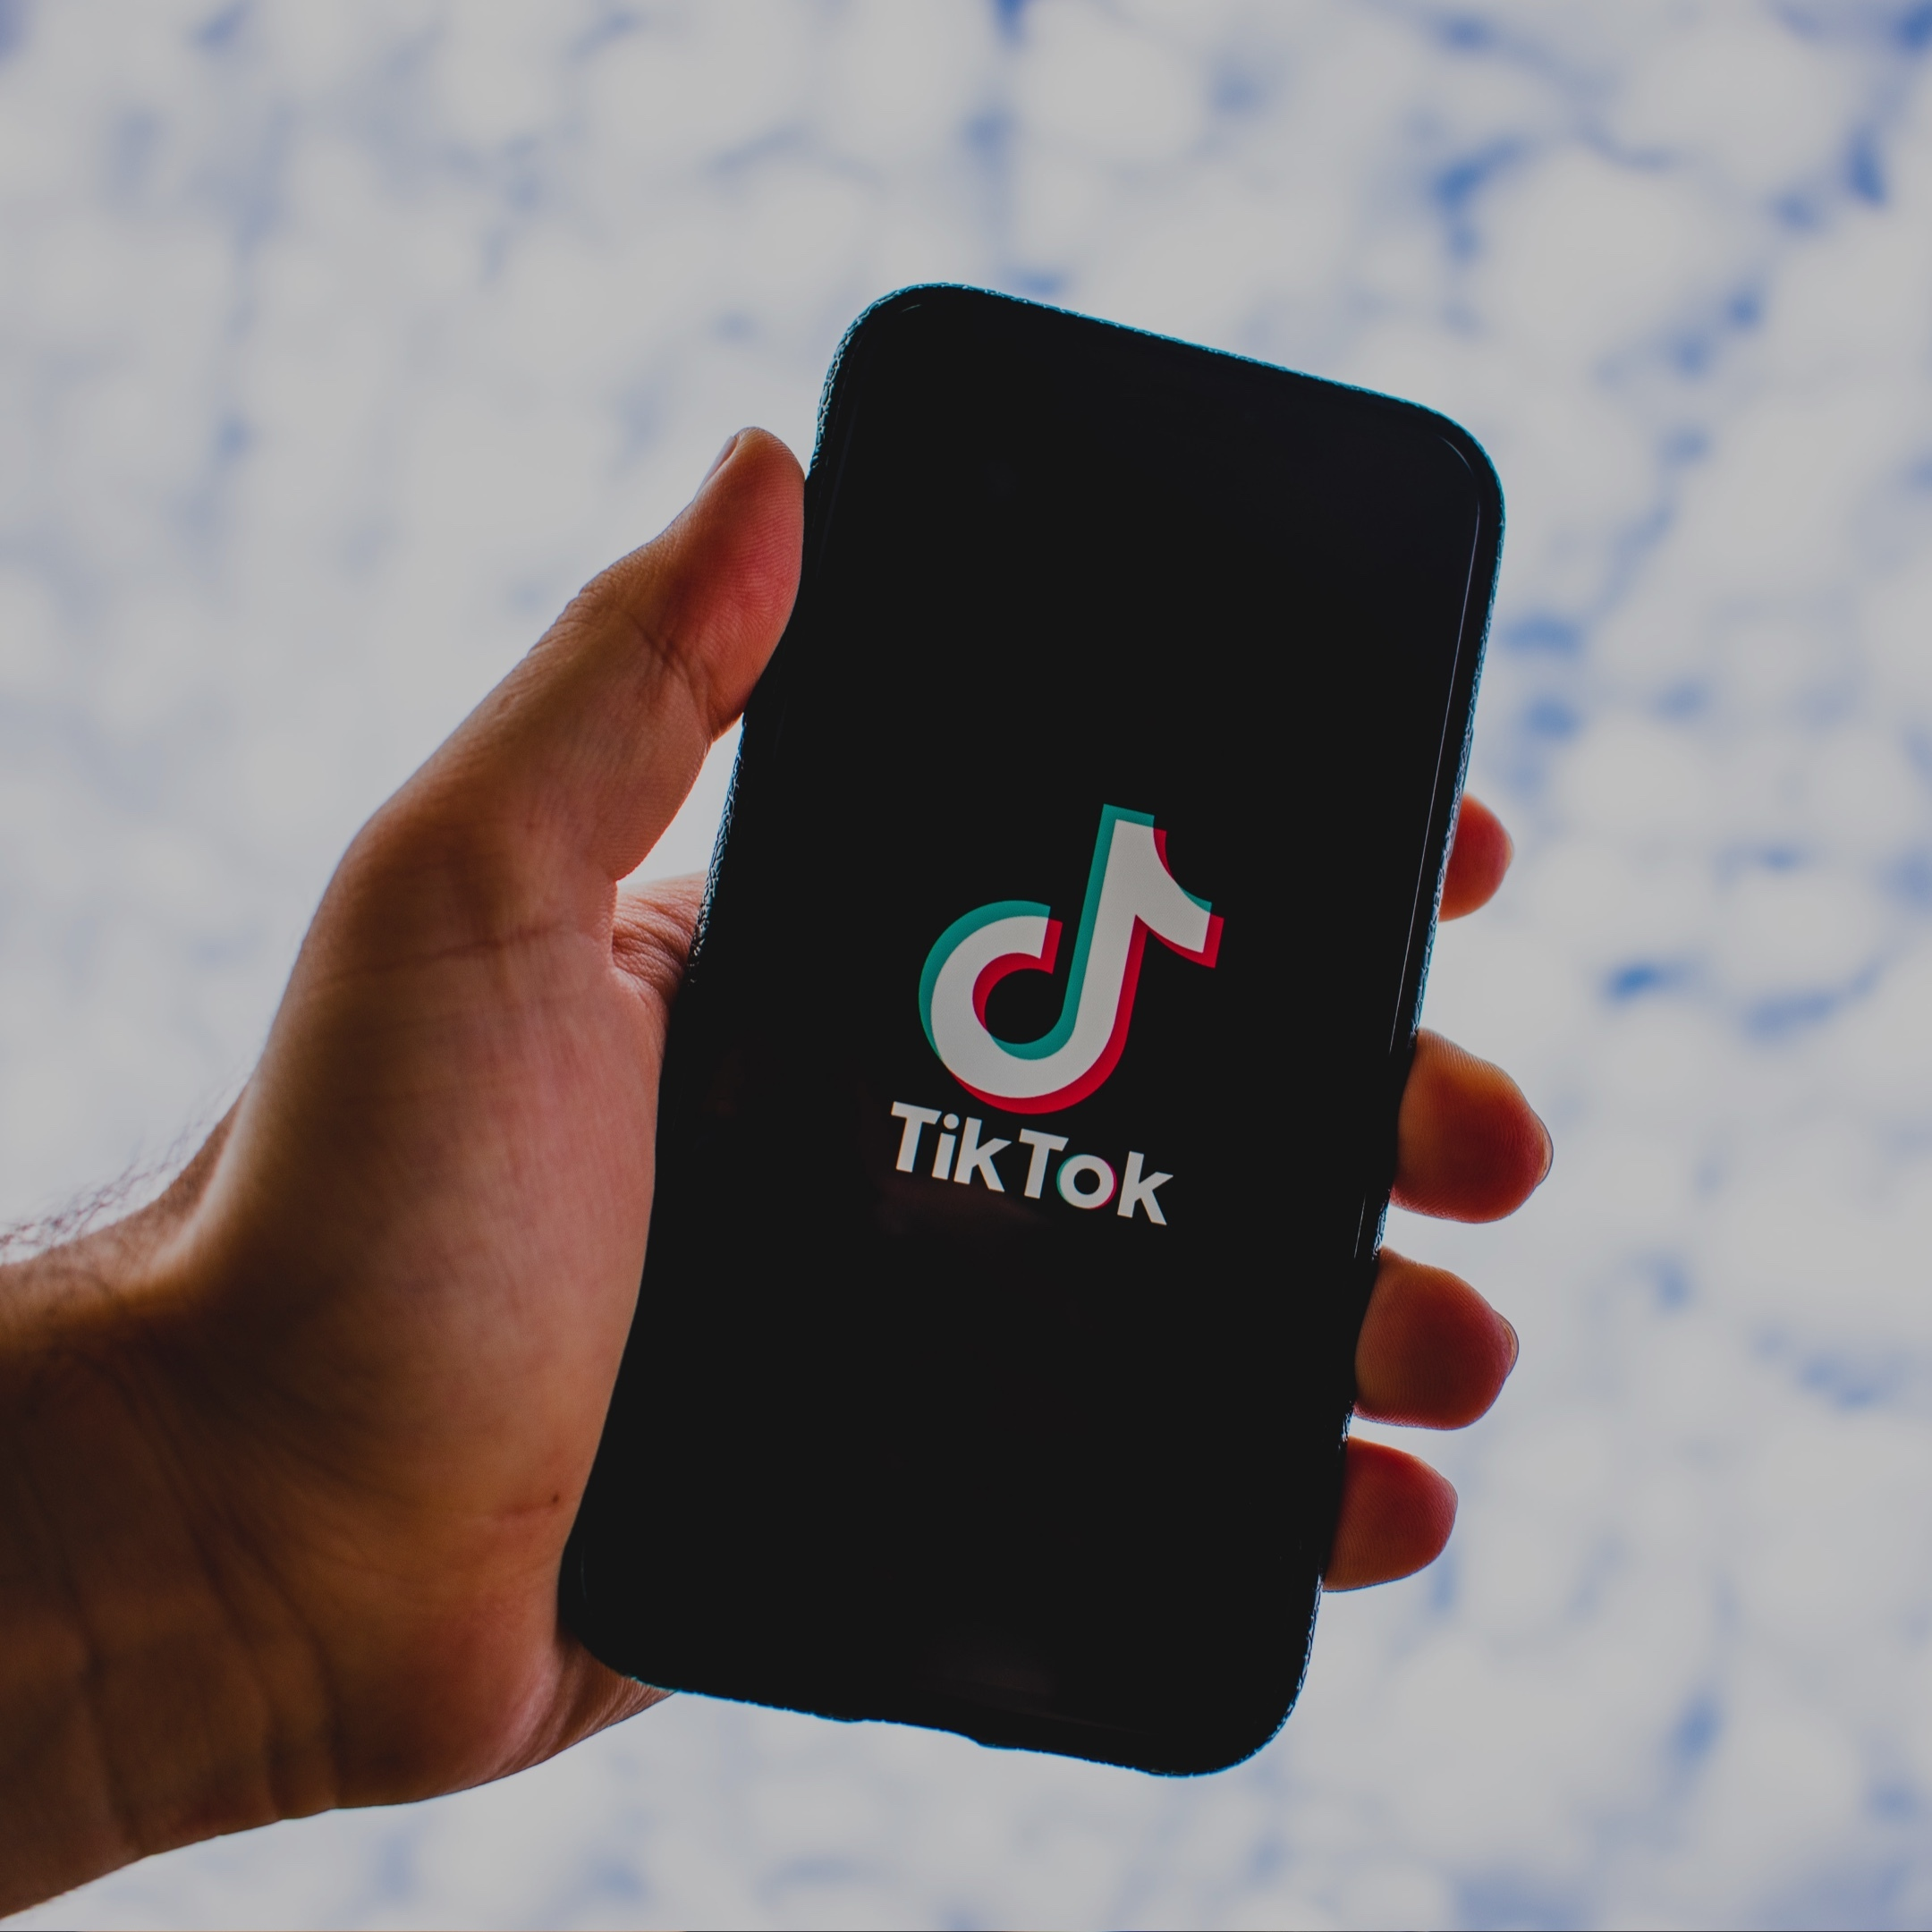 TikTok is Changing the Way We Consume Media. Here's What That Means for You.